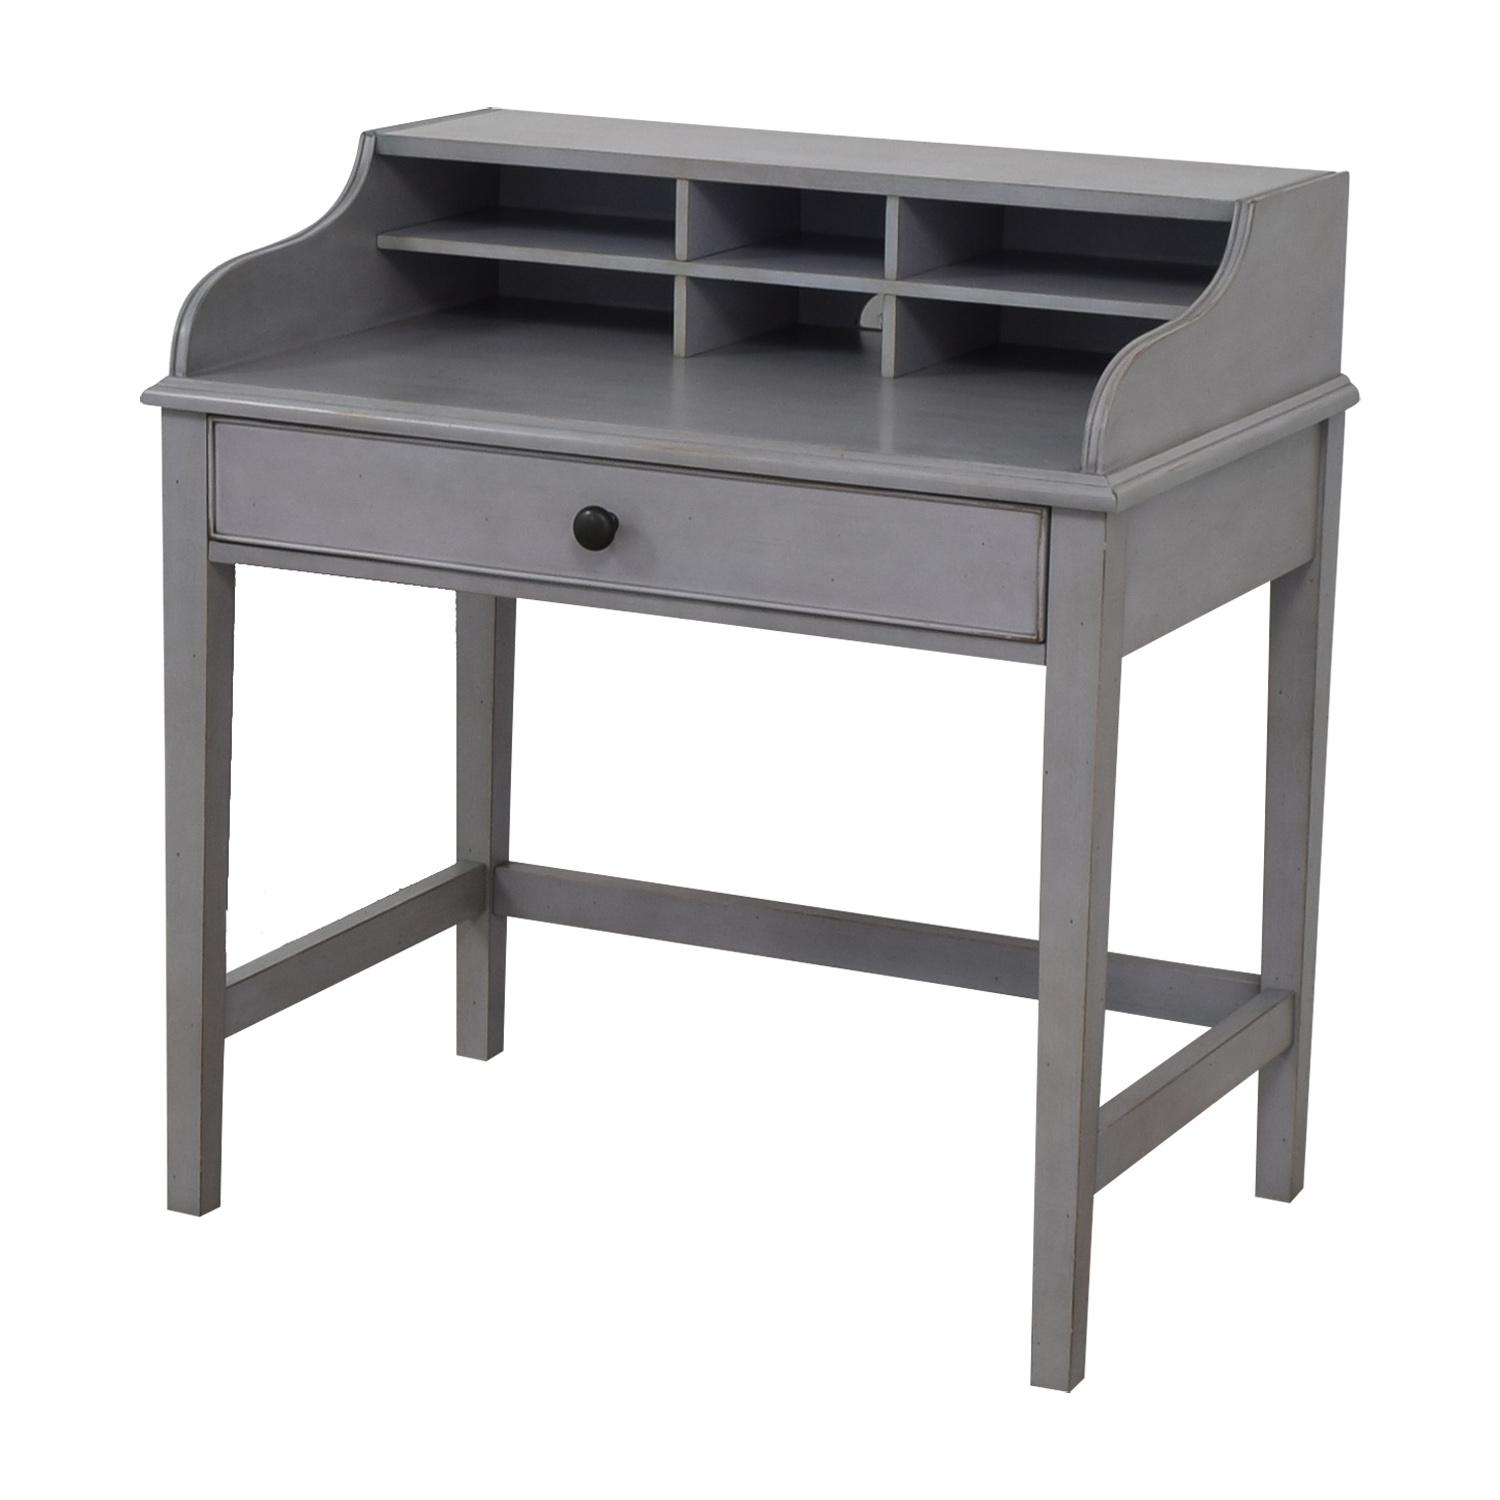 Pottery Barn Pottery Barn Jacqueline Single Pull-out Tray Grey Desk Tables